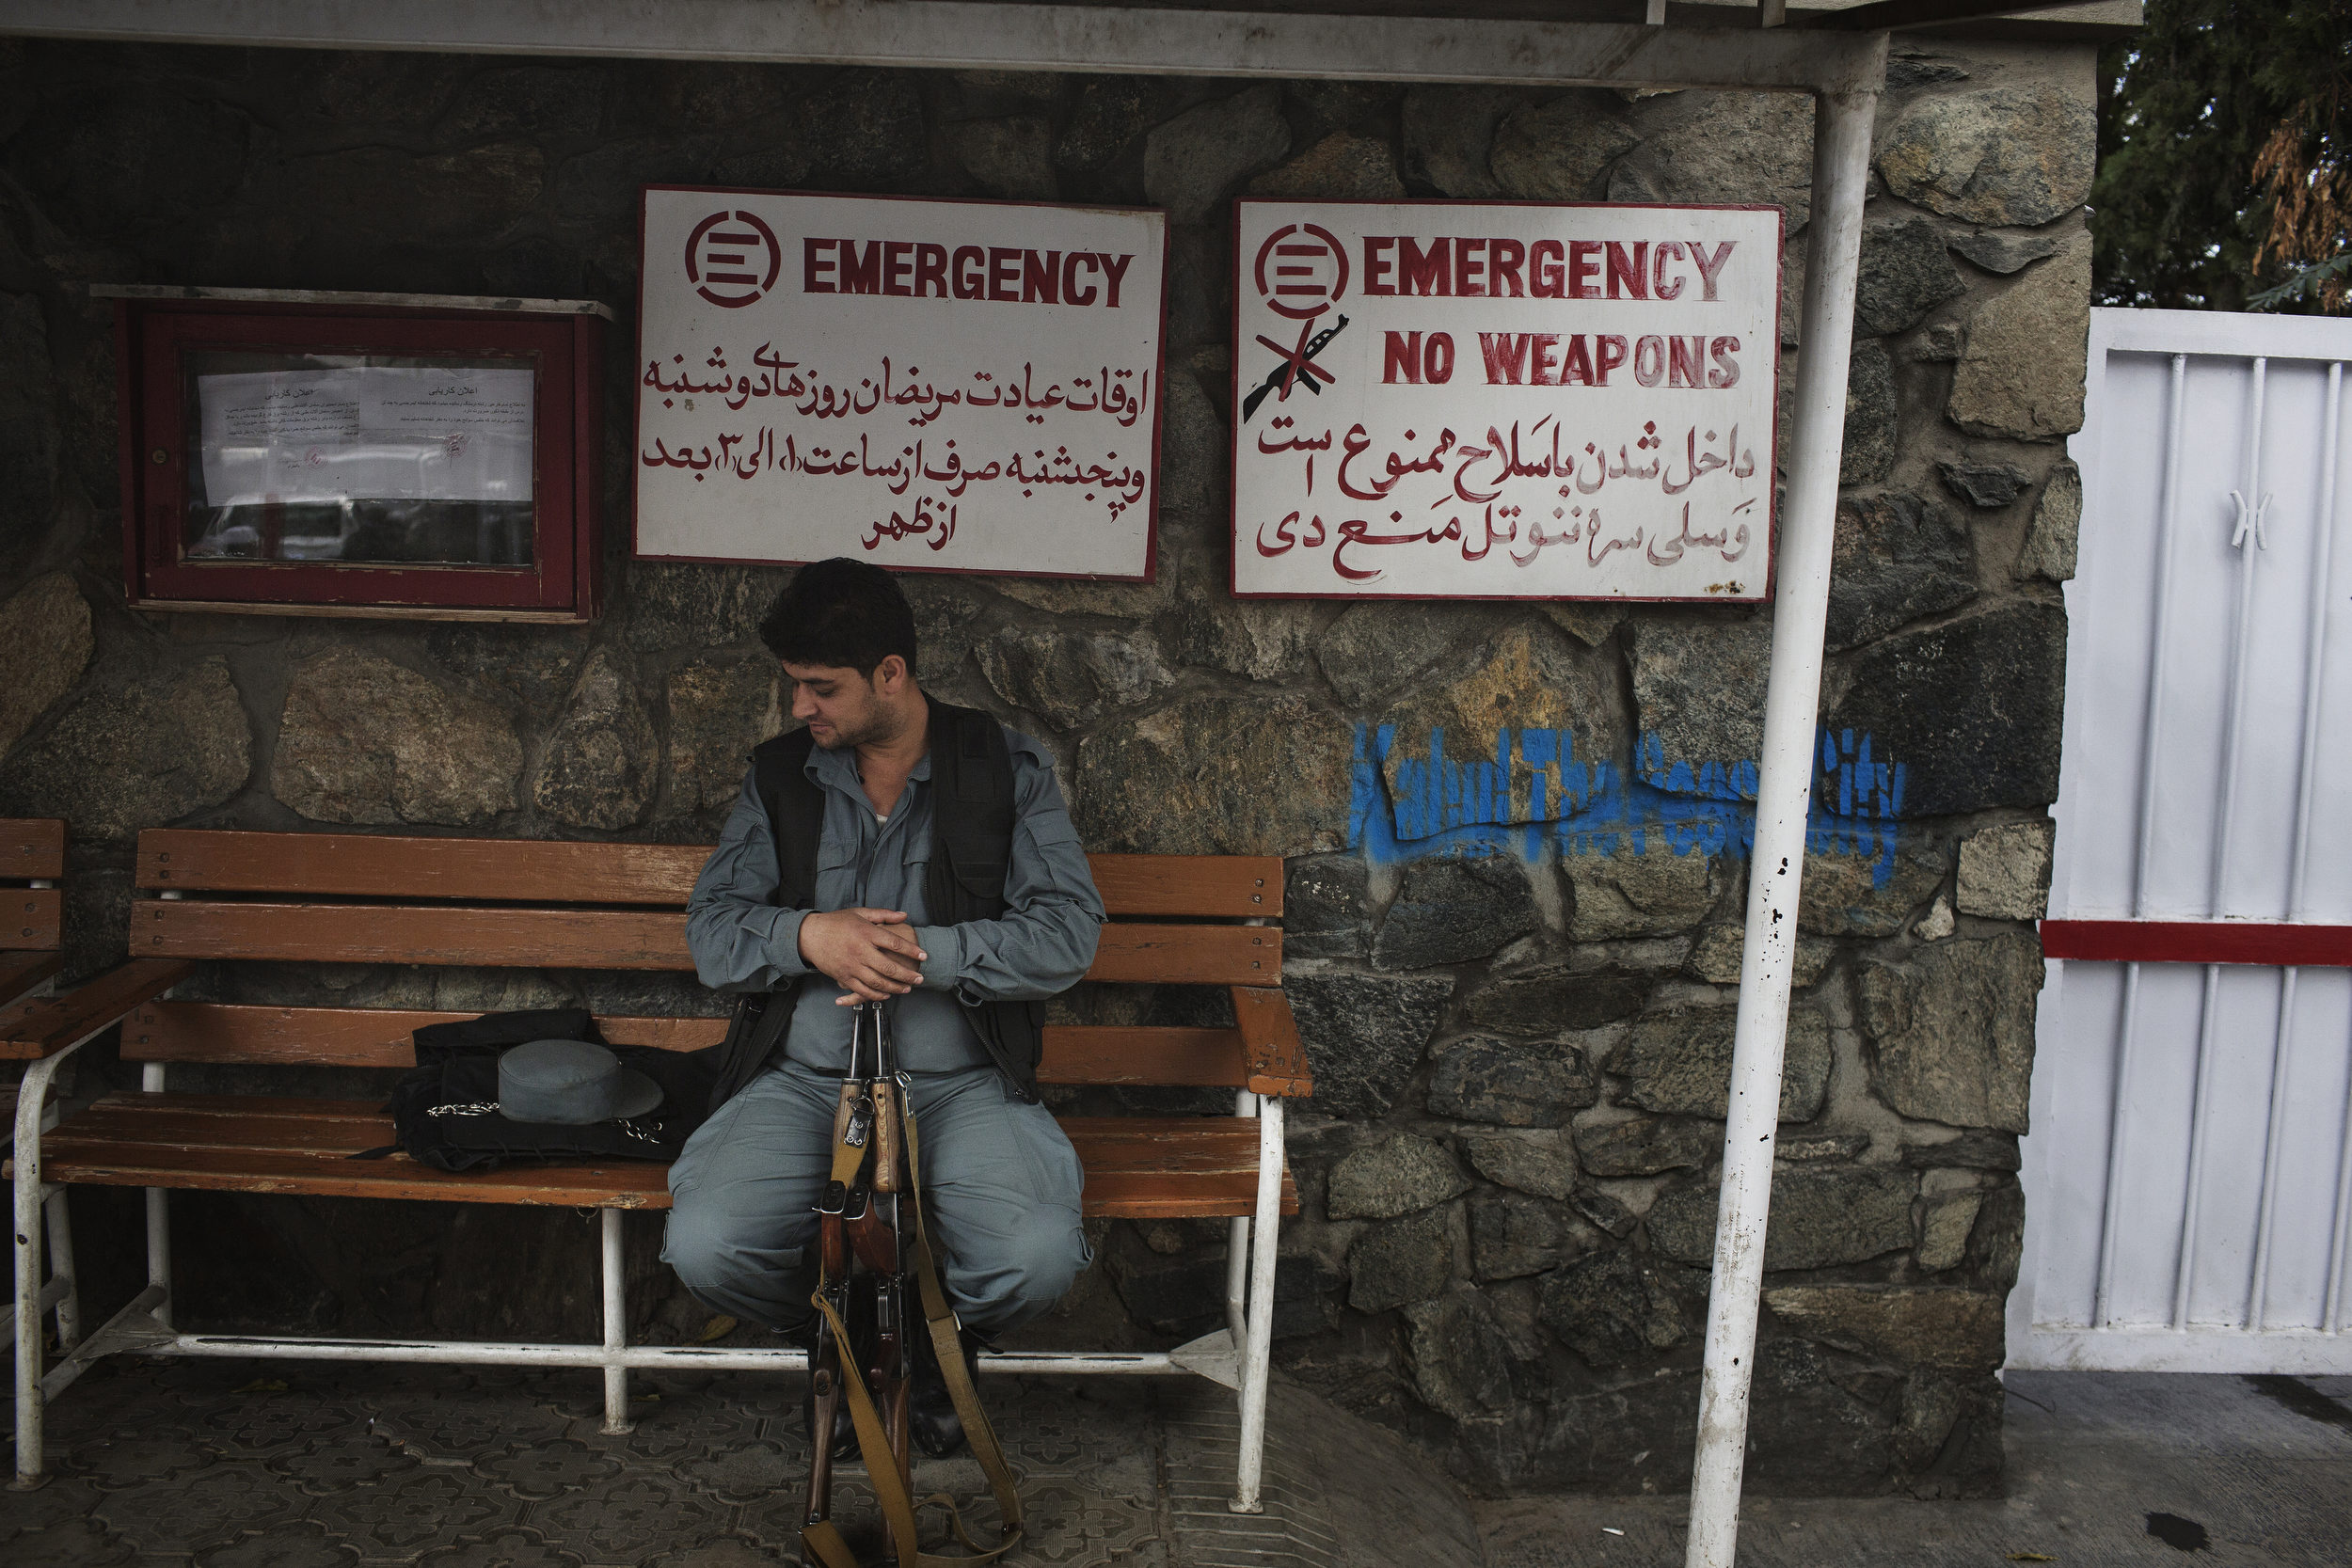 An Afghan policeman waits with his companions weapons, prohibited inside the hospital.